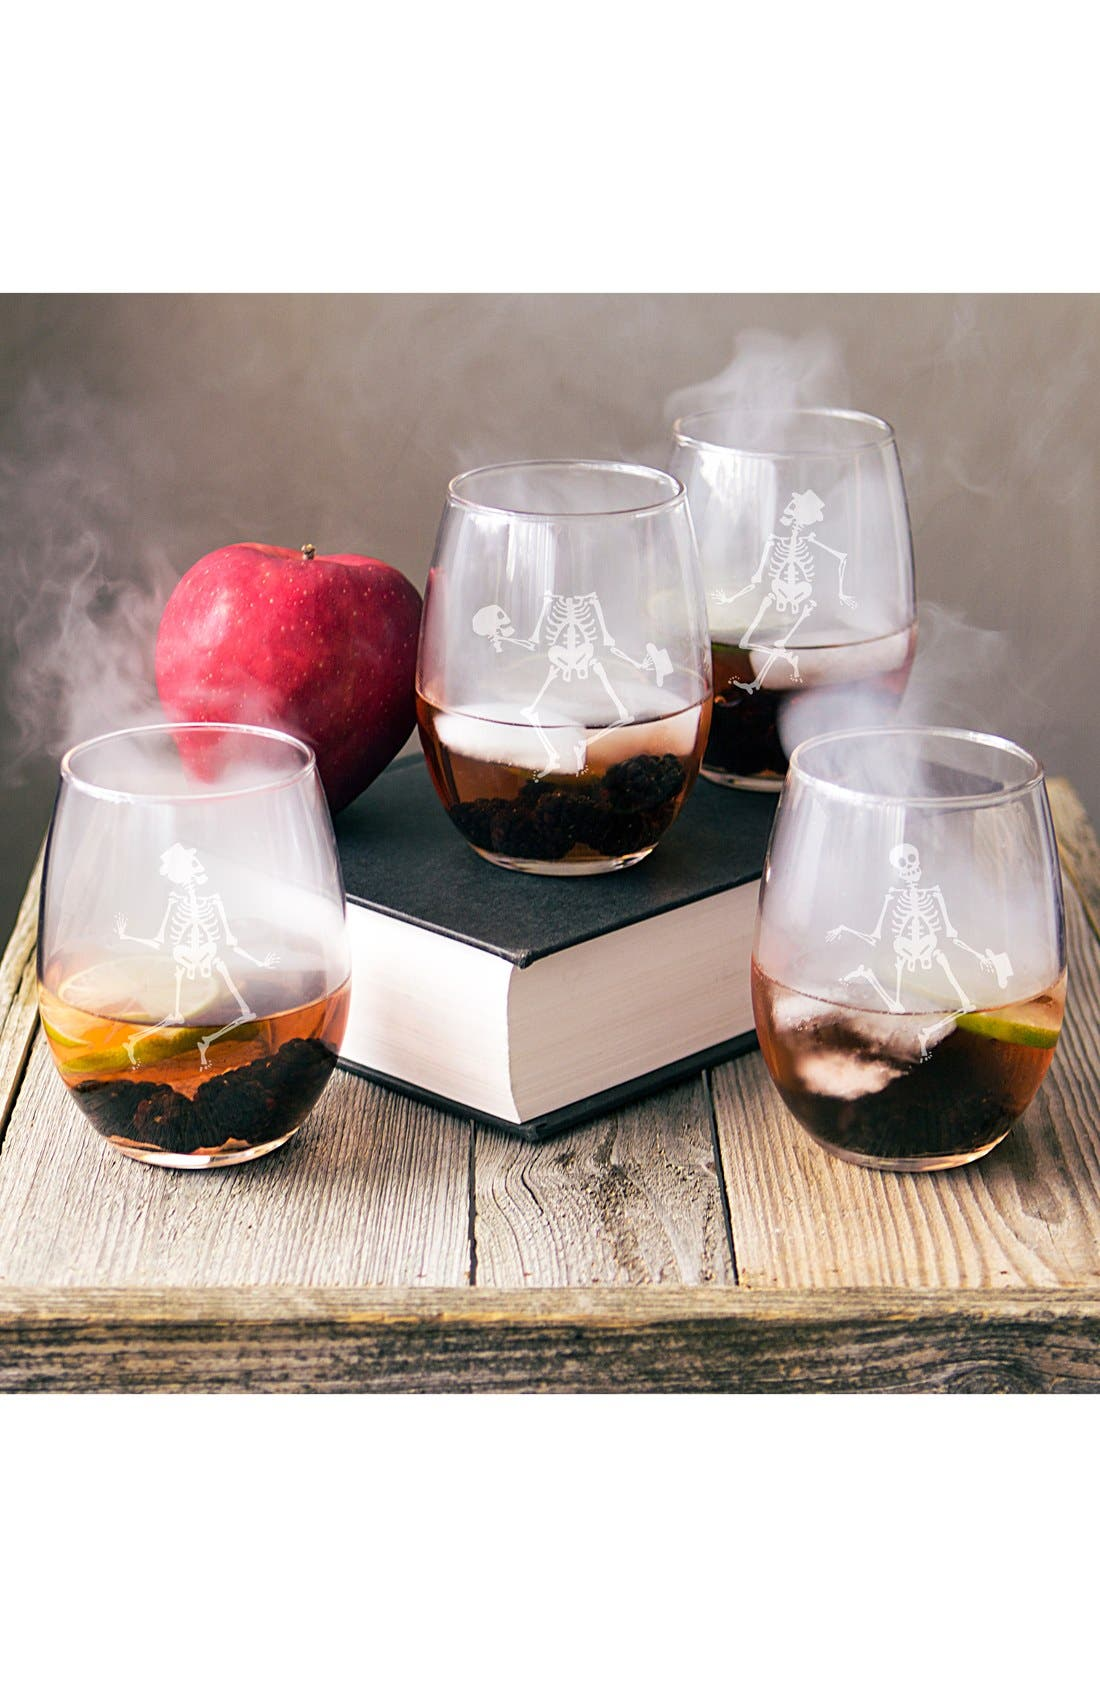 Cathy's Concepts Skeletons Set of 4 Stemless Wine Glasses